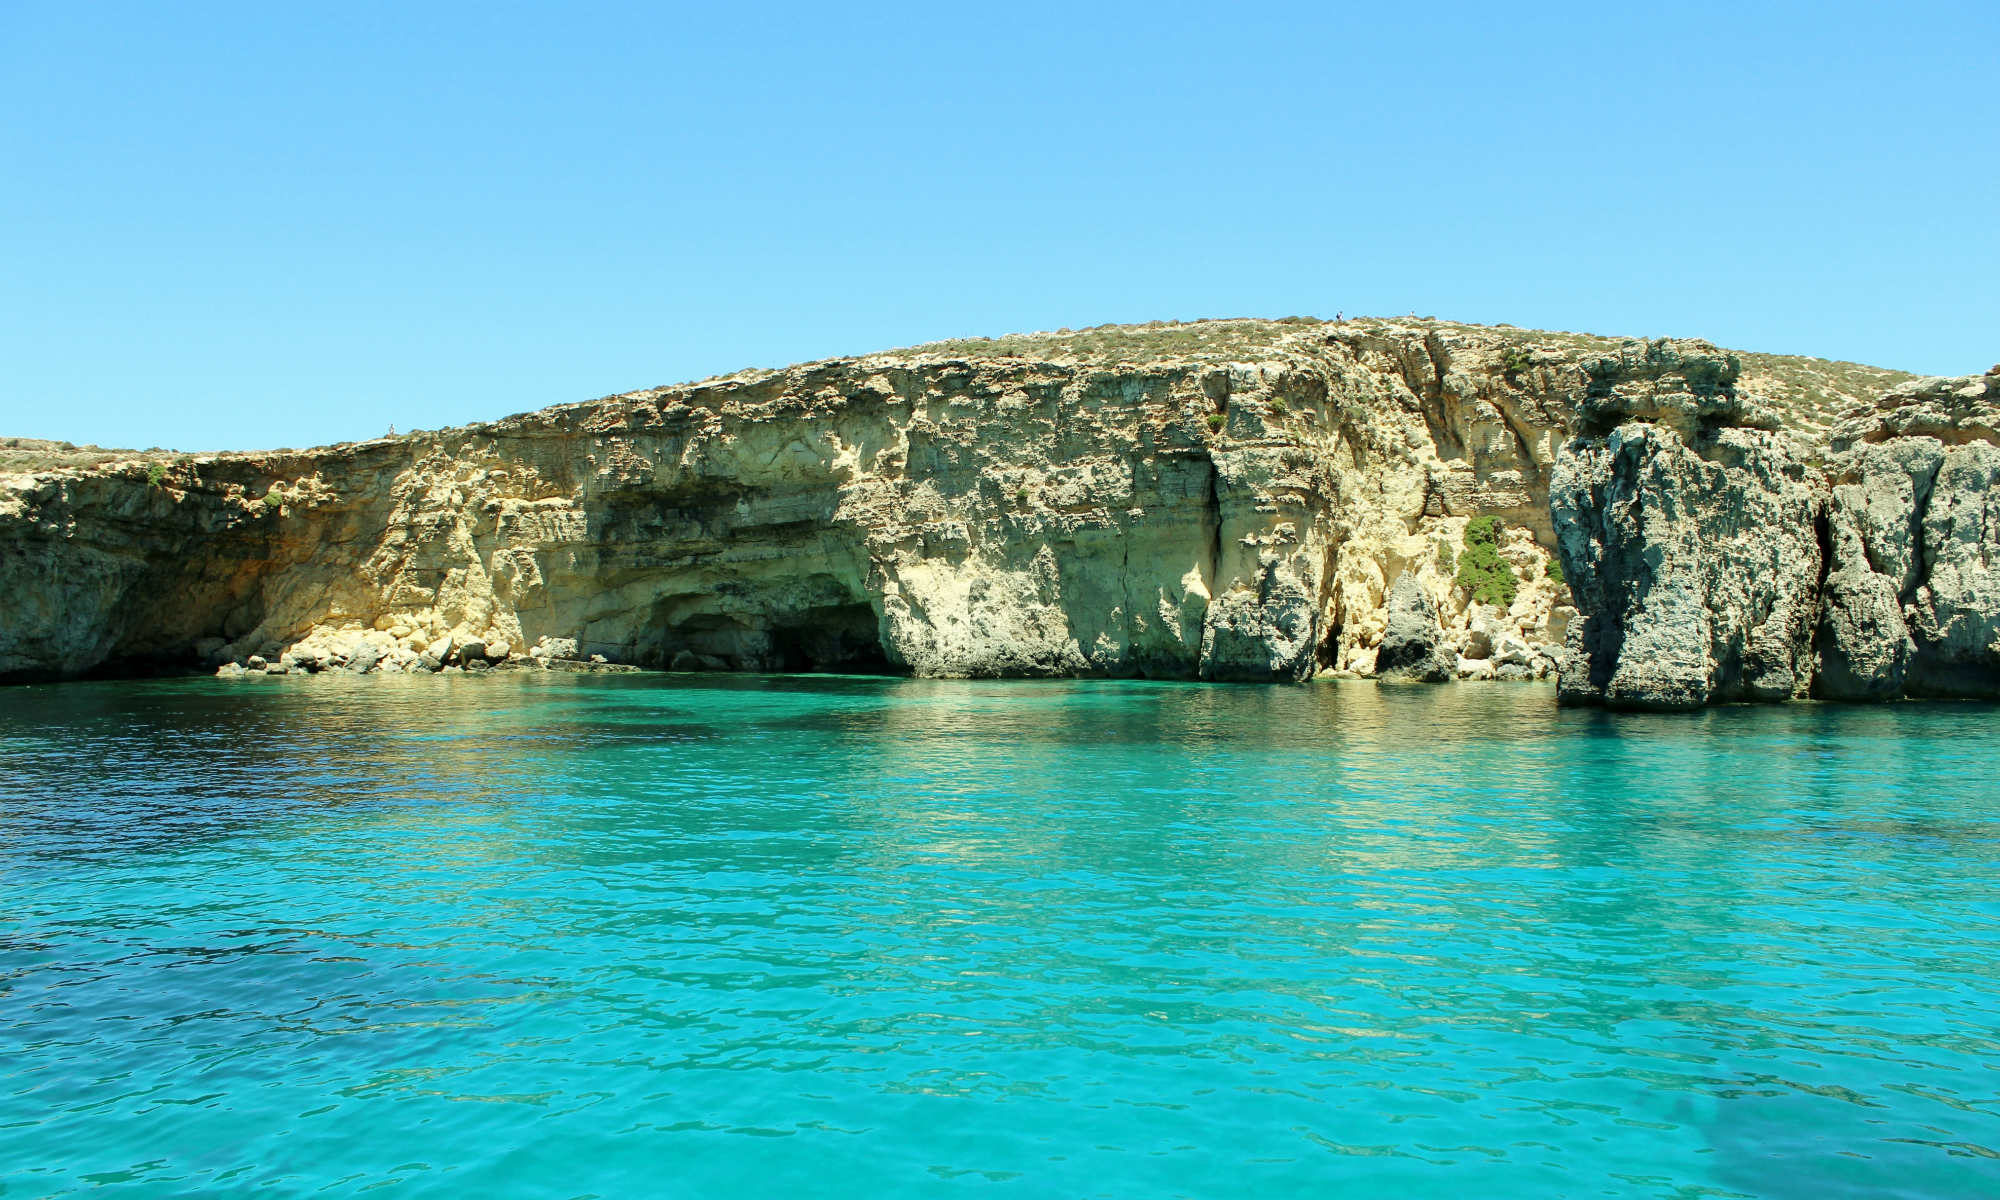 A beautiful lagoon where the turquoise waters of the Mediterranean meet Gozo's cliff edges.